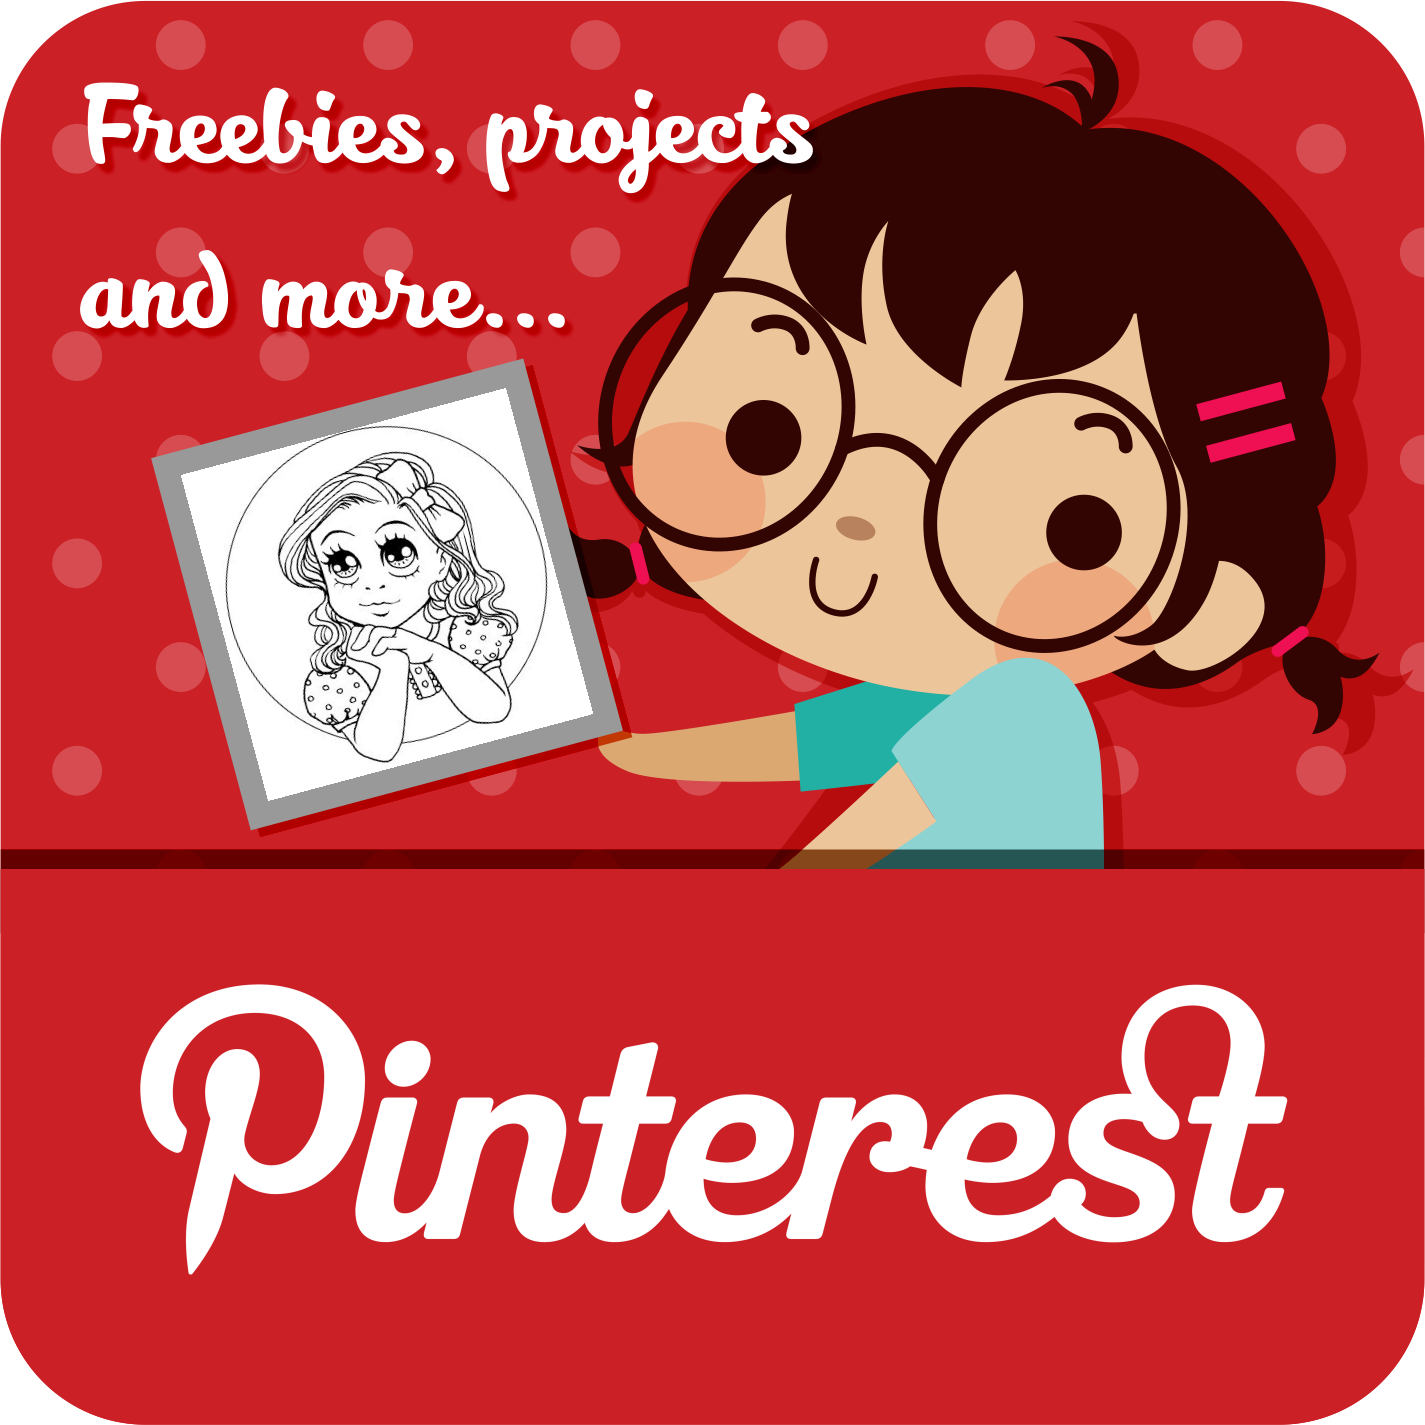 Our Pinterest